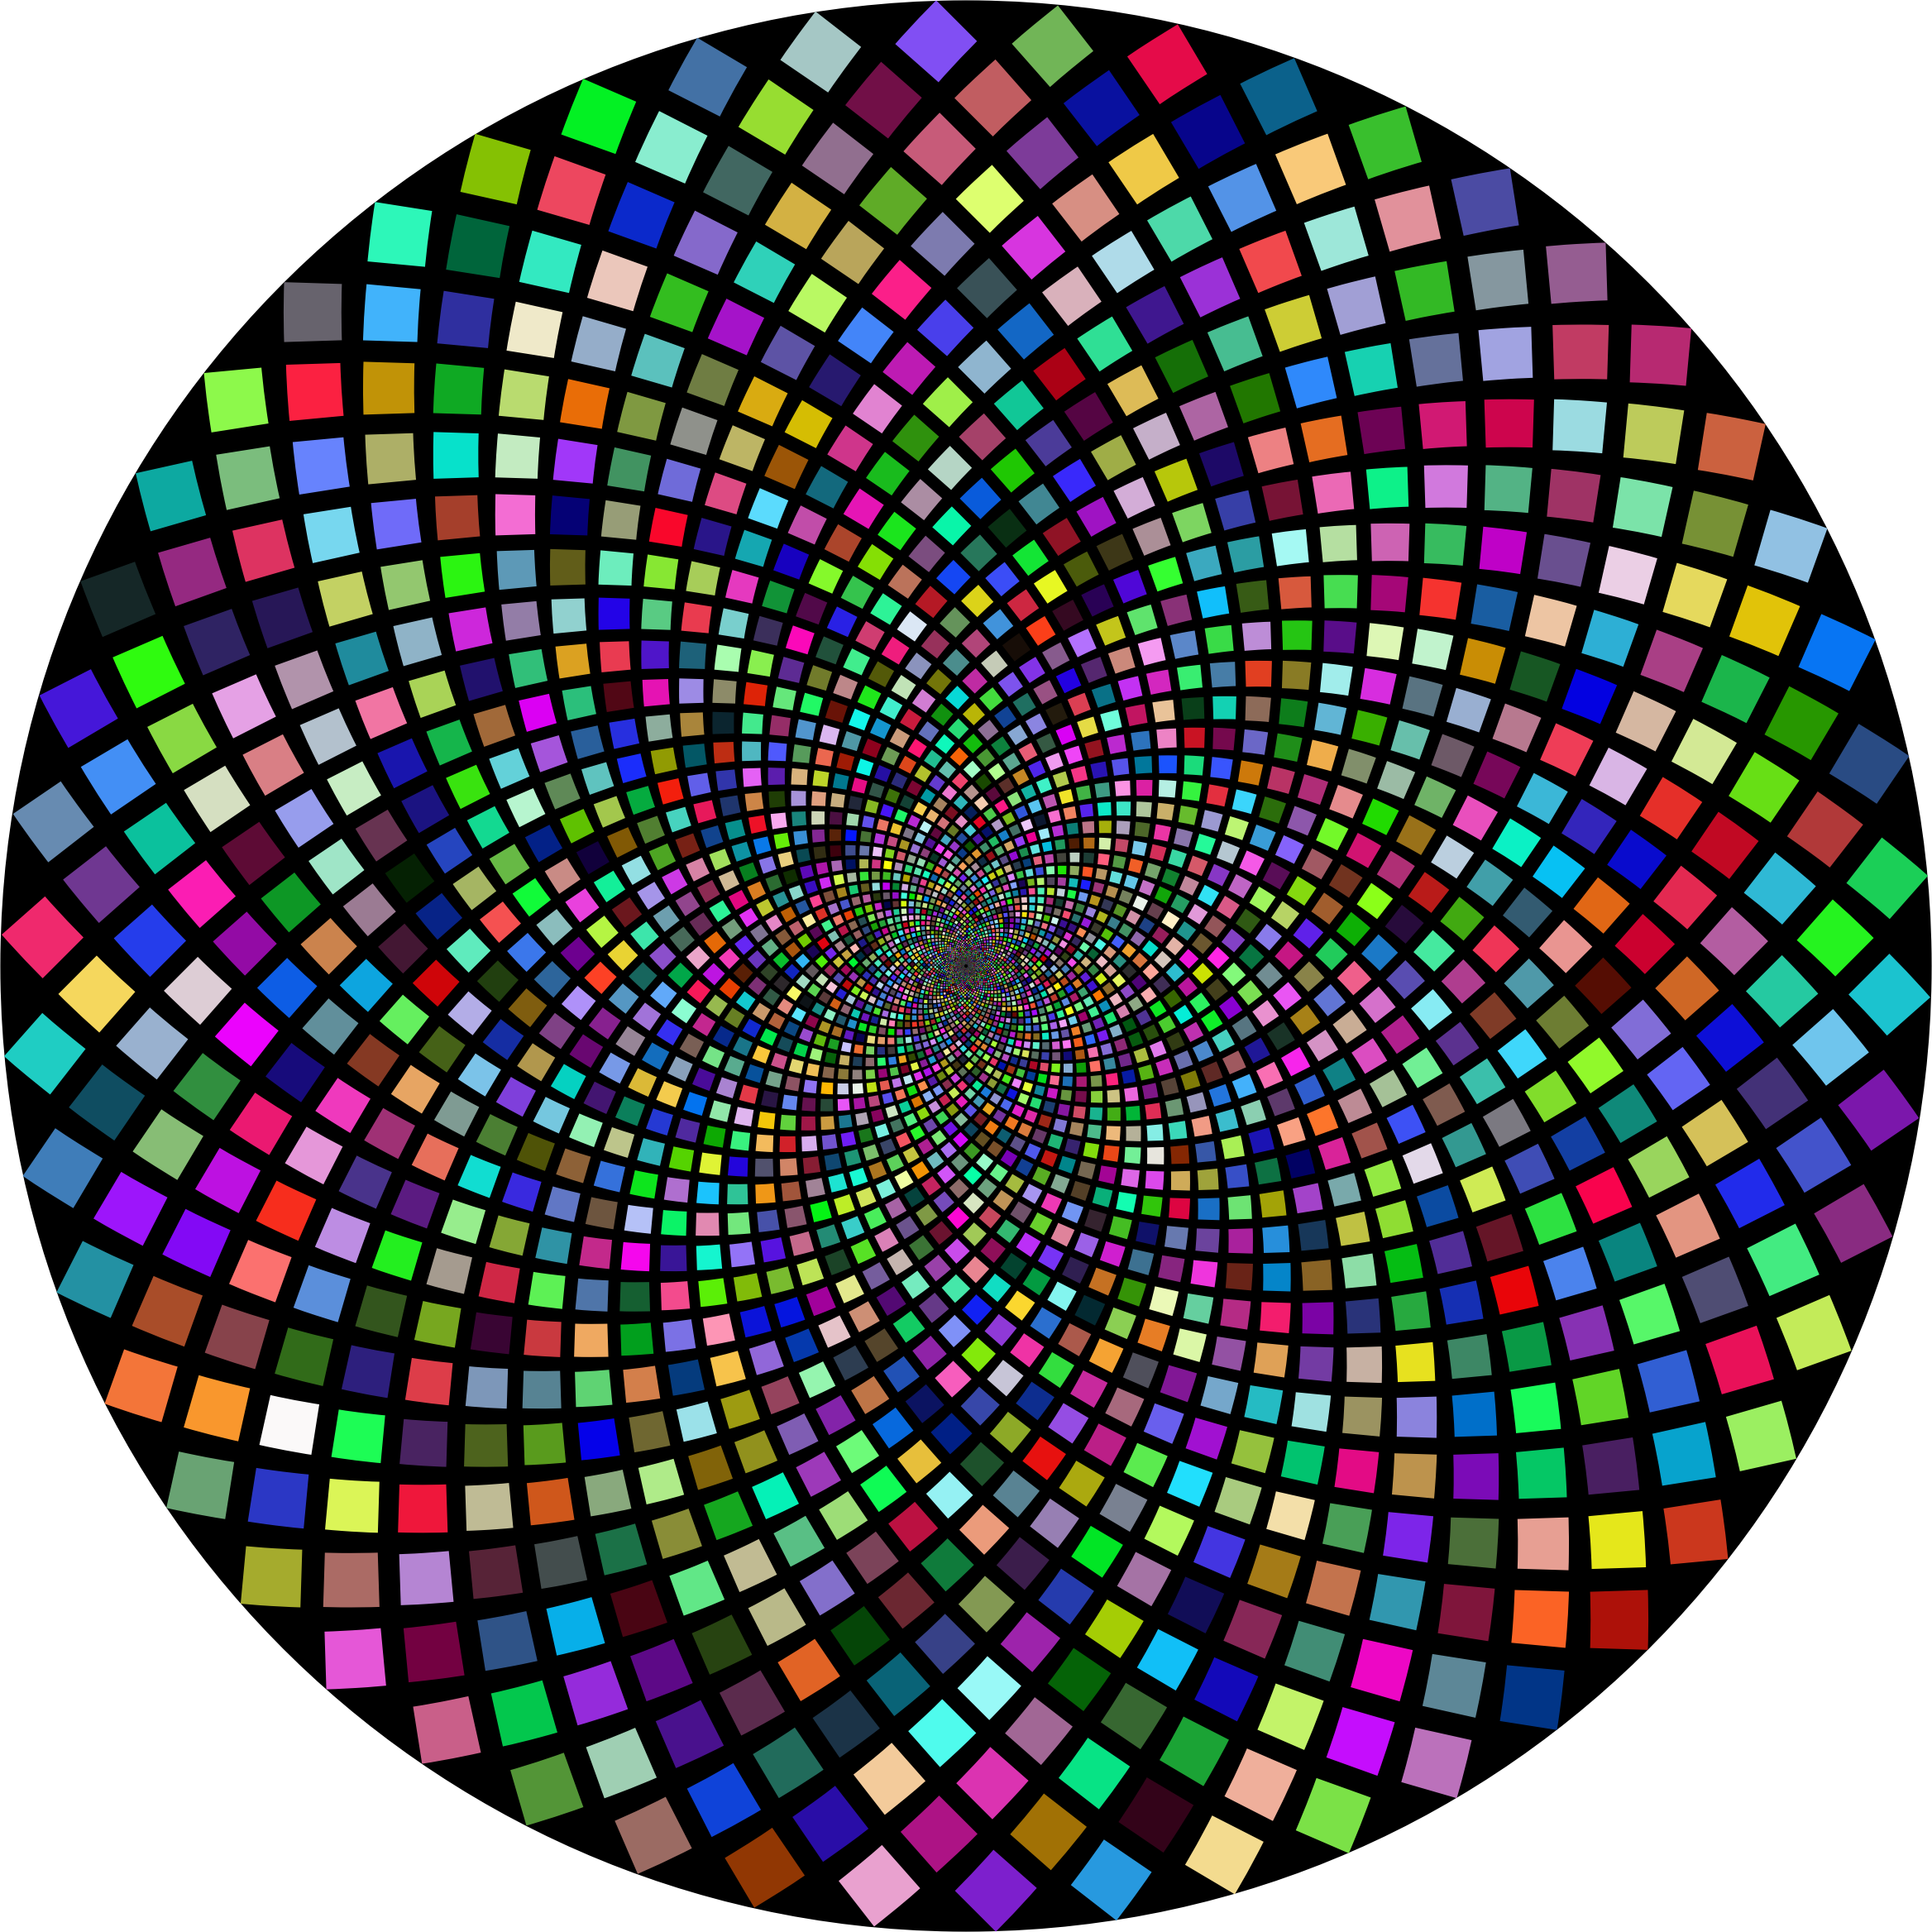 Hypnotic Checkerboard Vortex 3 by GDJ